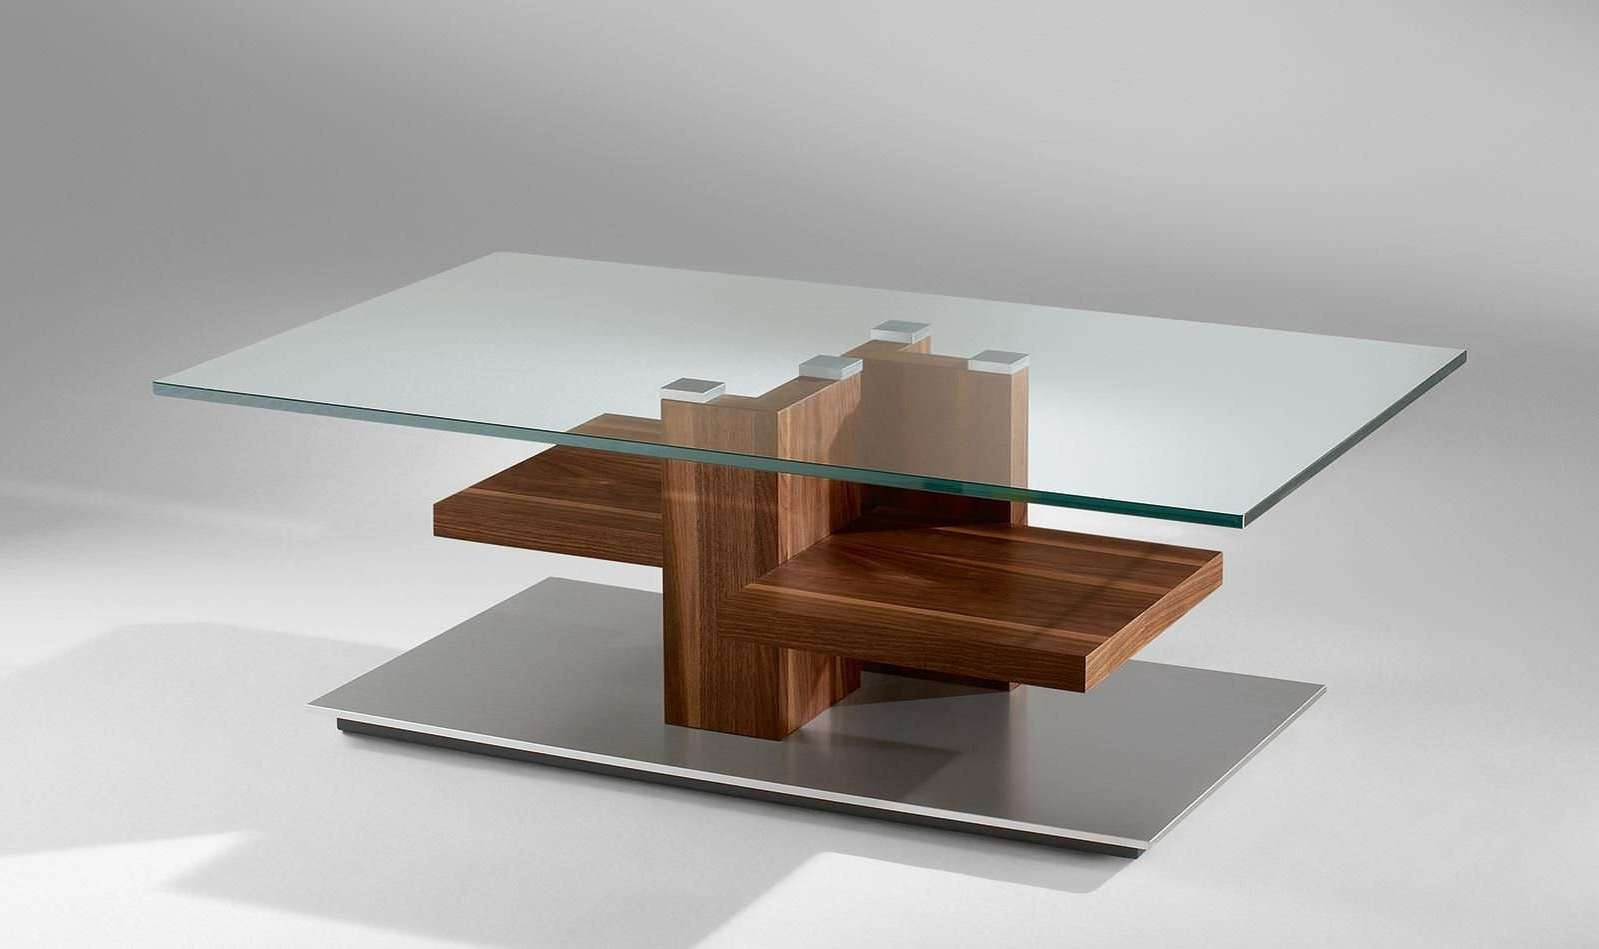 Most Recently Released Glass And Wood Coffee Tables Regarding Stunning Coffee Table Wood Glass On Home Design Planning (View 5 of 20)